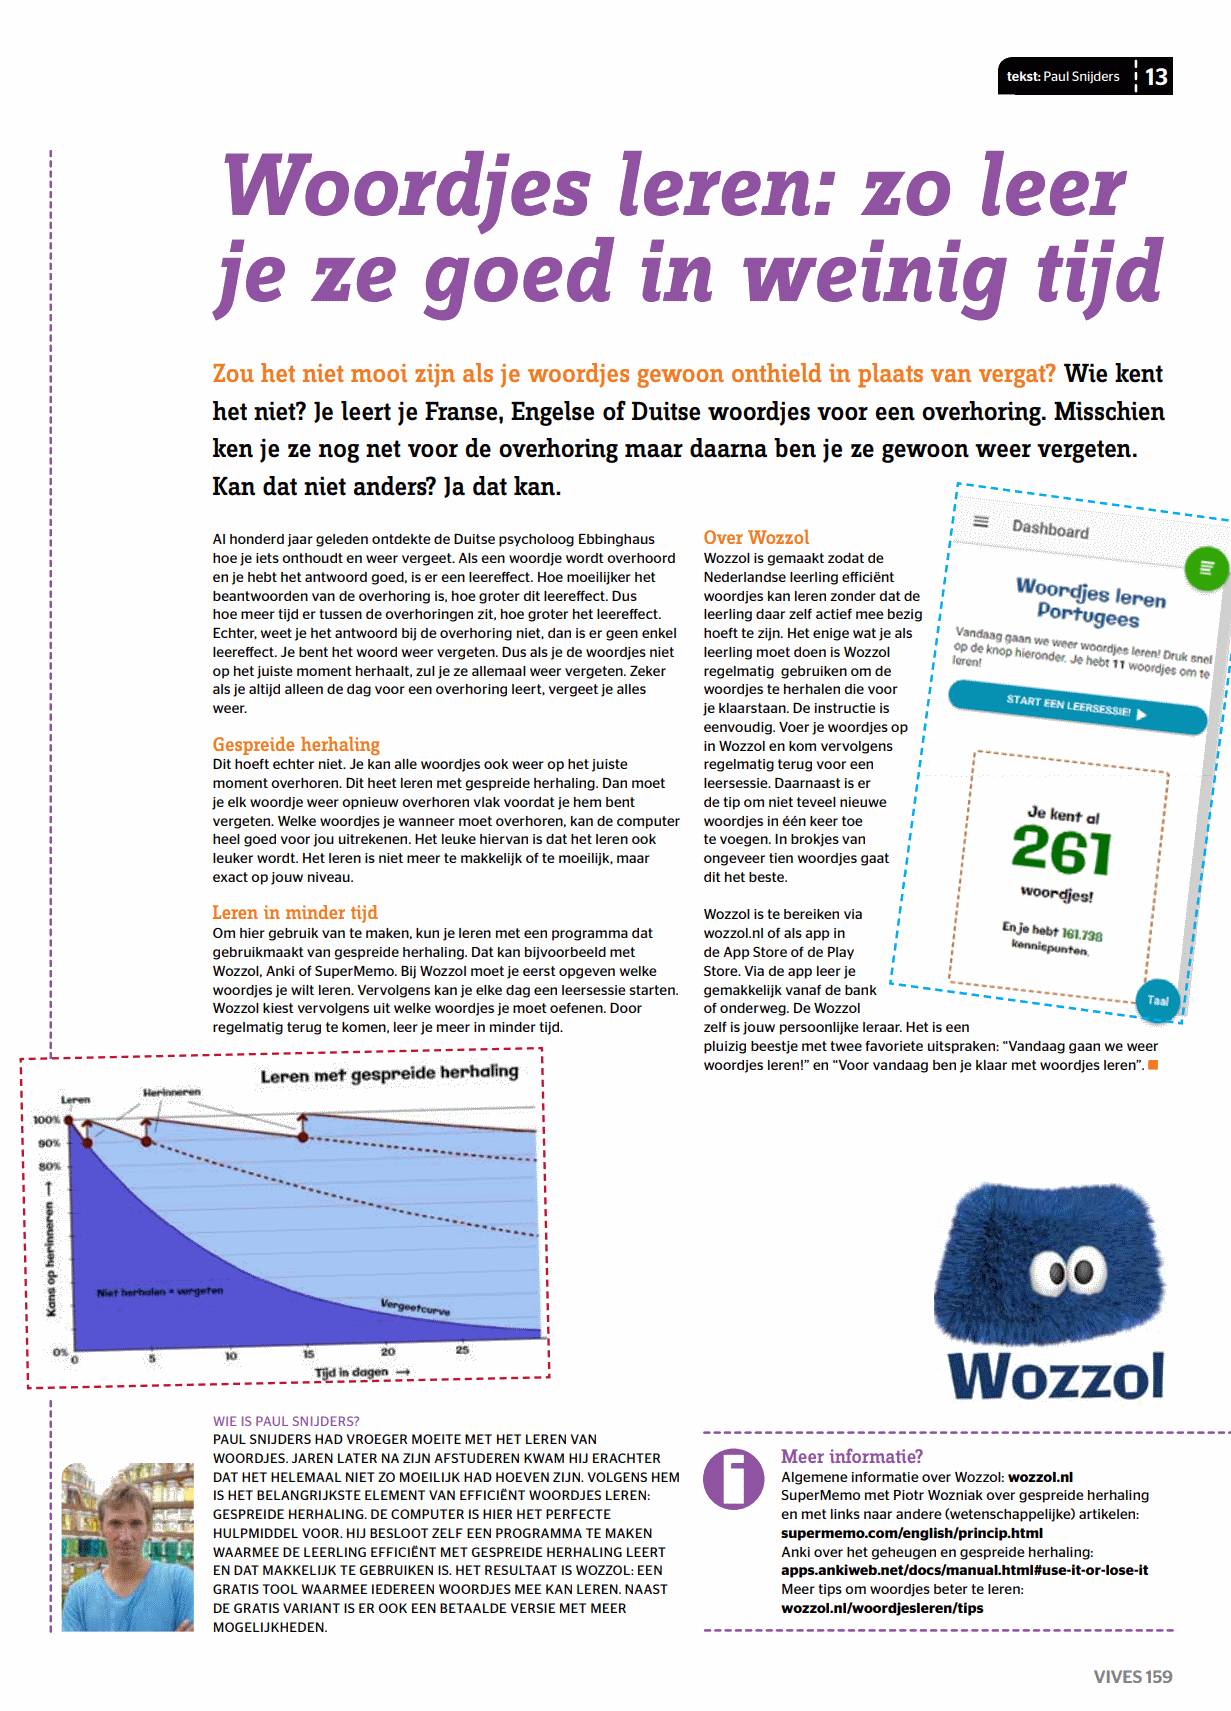 Artikel over Wozzol in Vives magazine